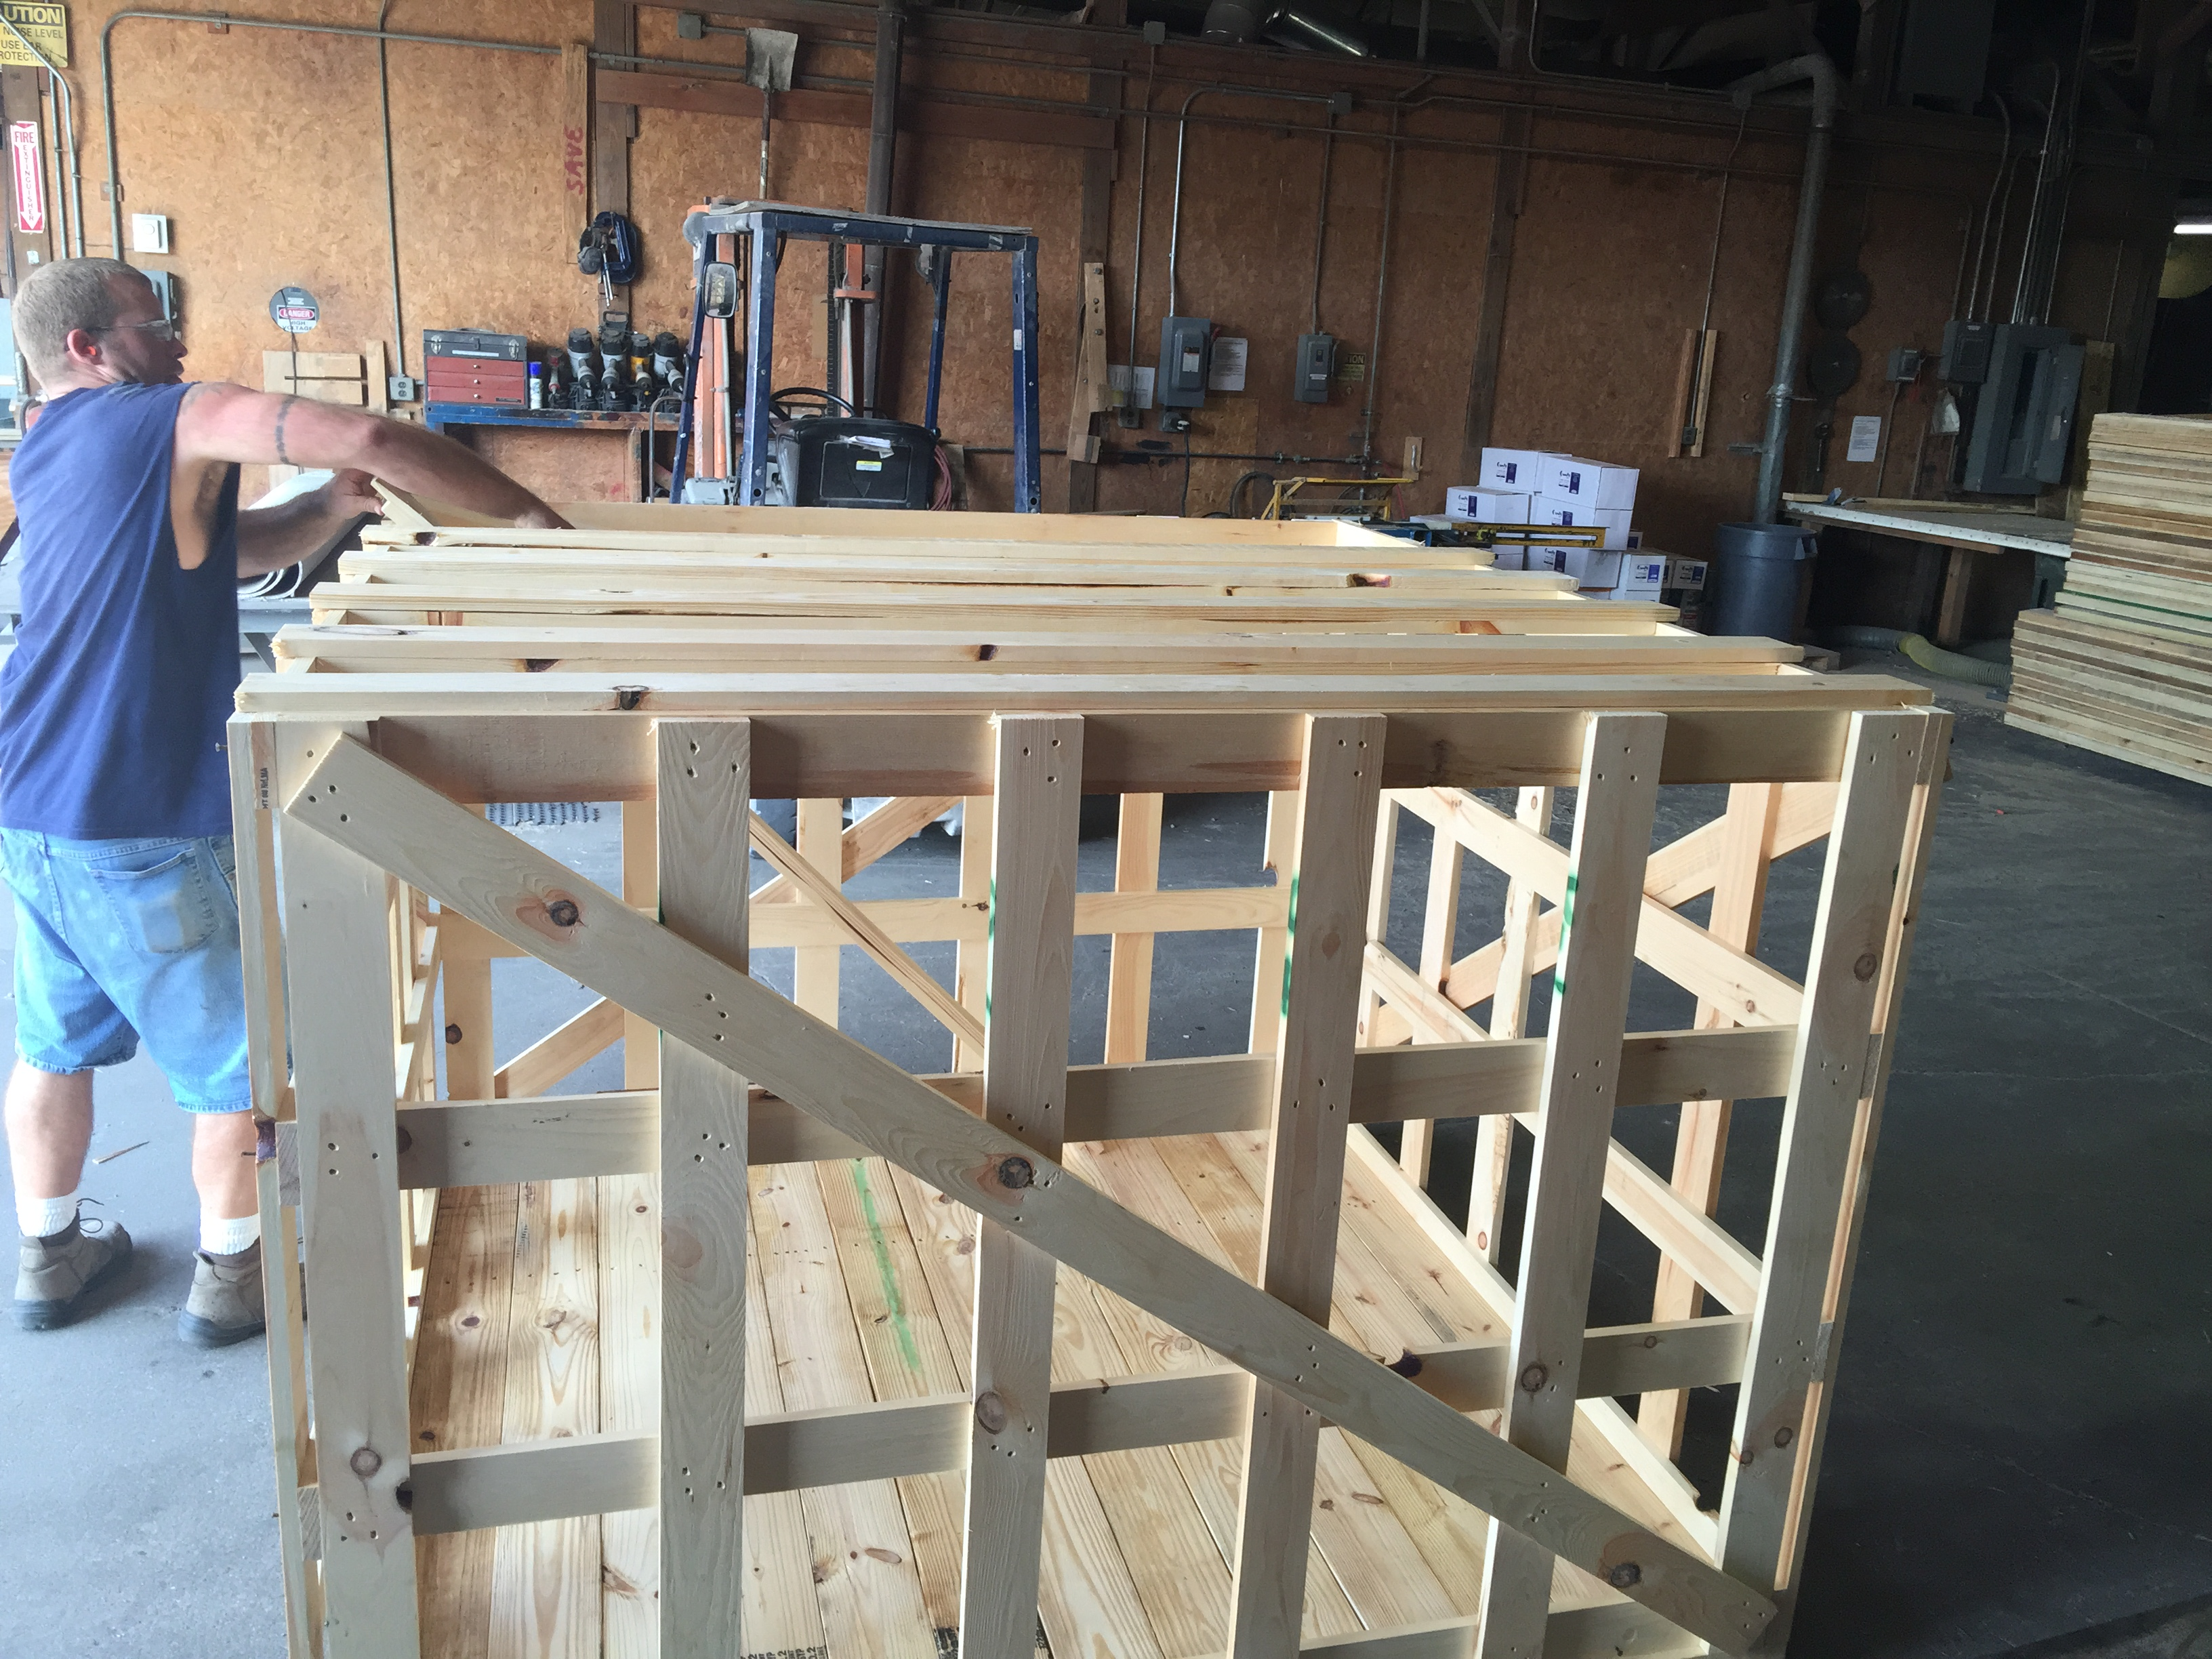 Final Assembly of Crates